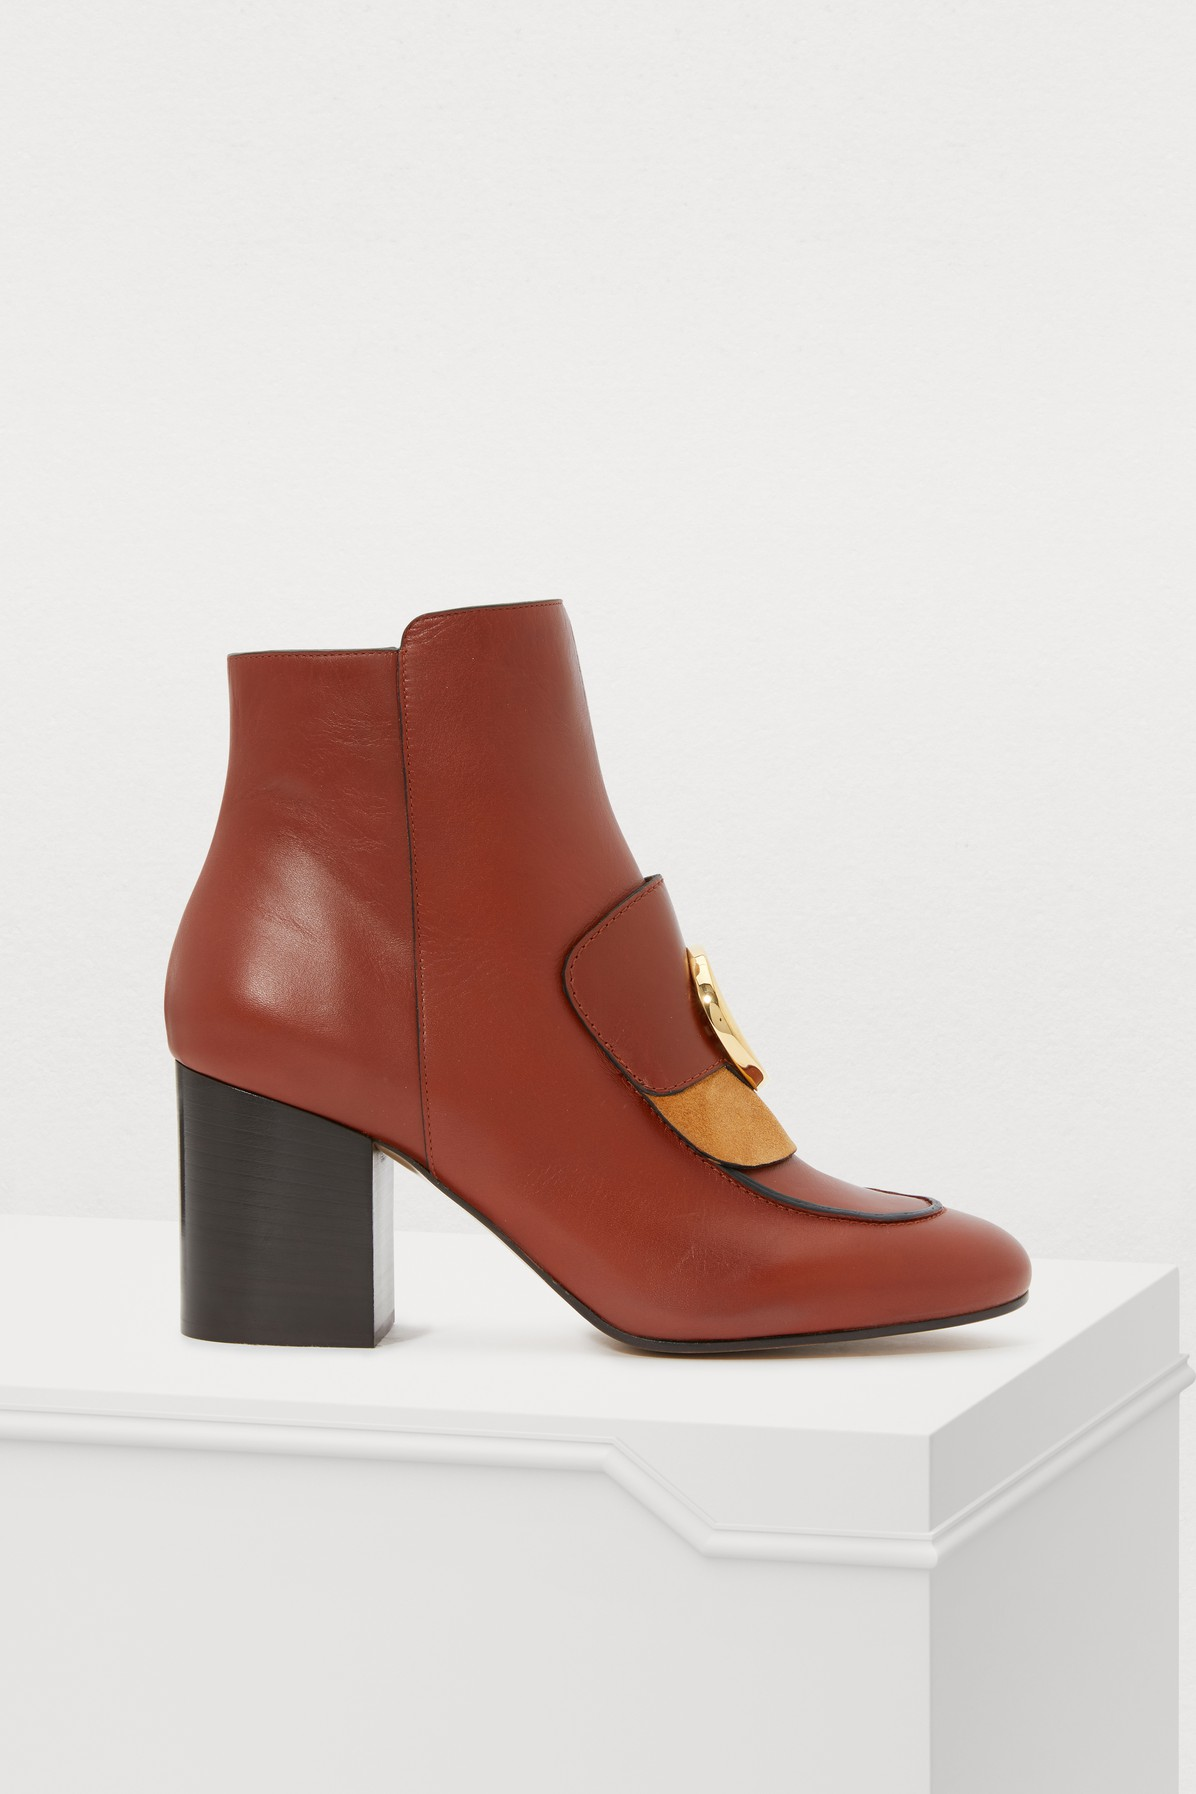 46219b94bd Chloe C Ankle Boots in Sepia Brown